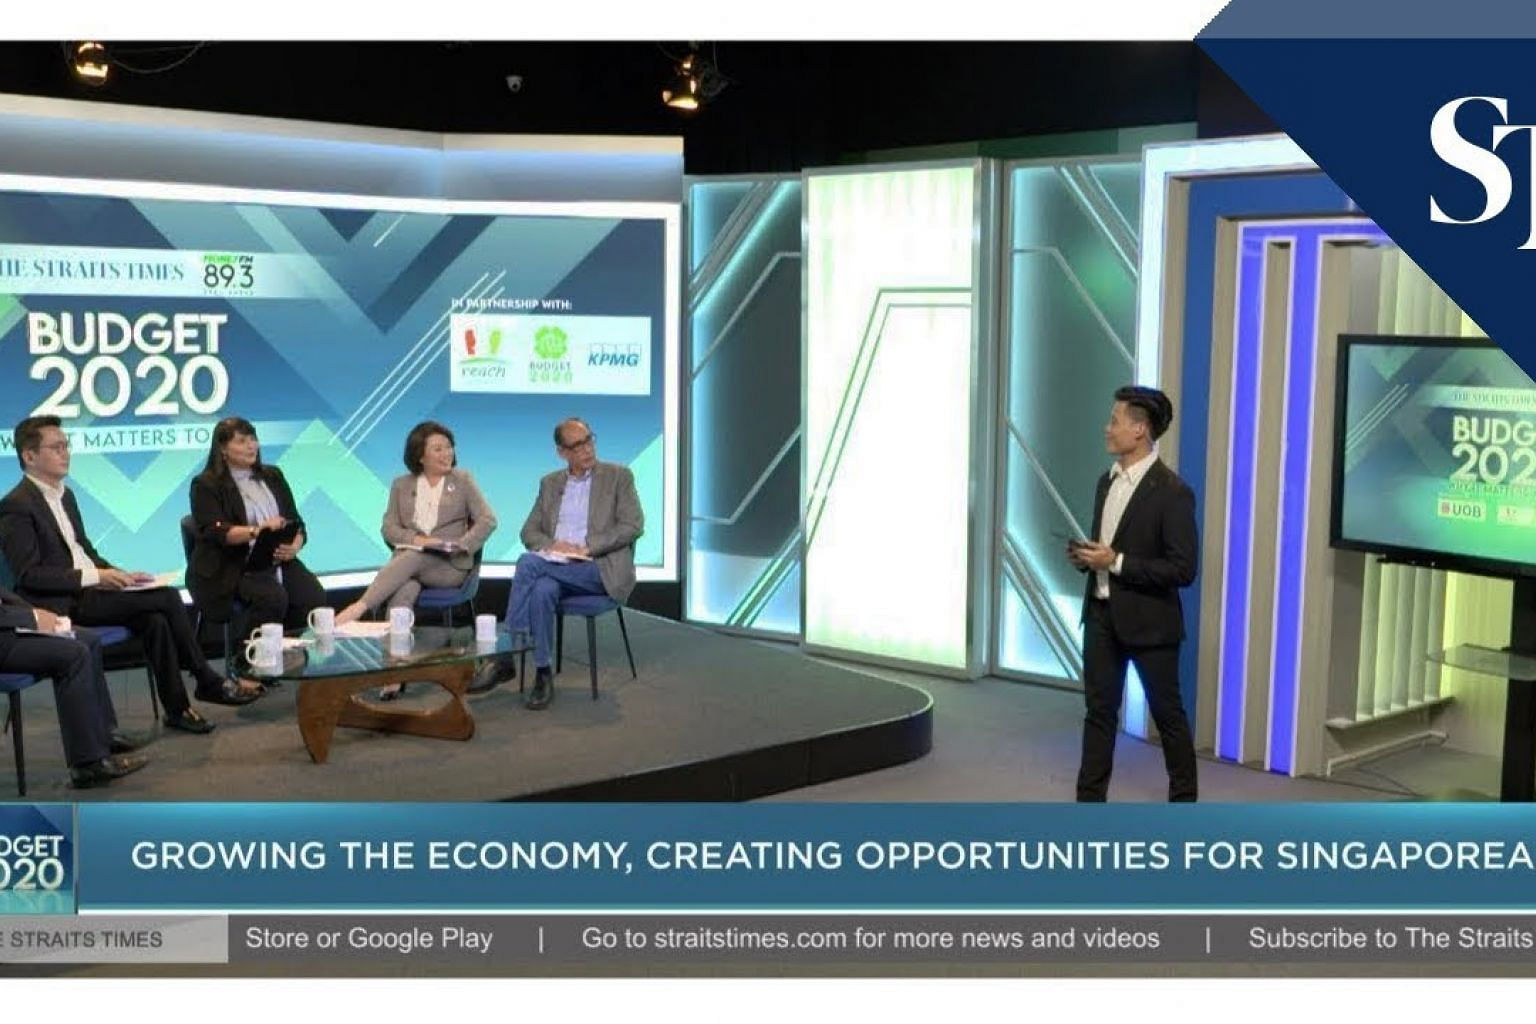 Singapore Budget 2020: Growing economy, creating opportunities | The Straits Times x Money FM 89.3